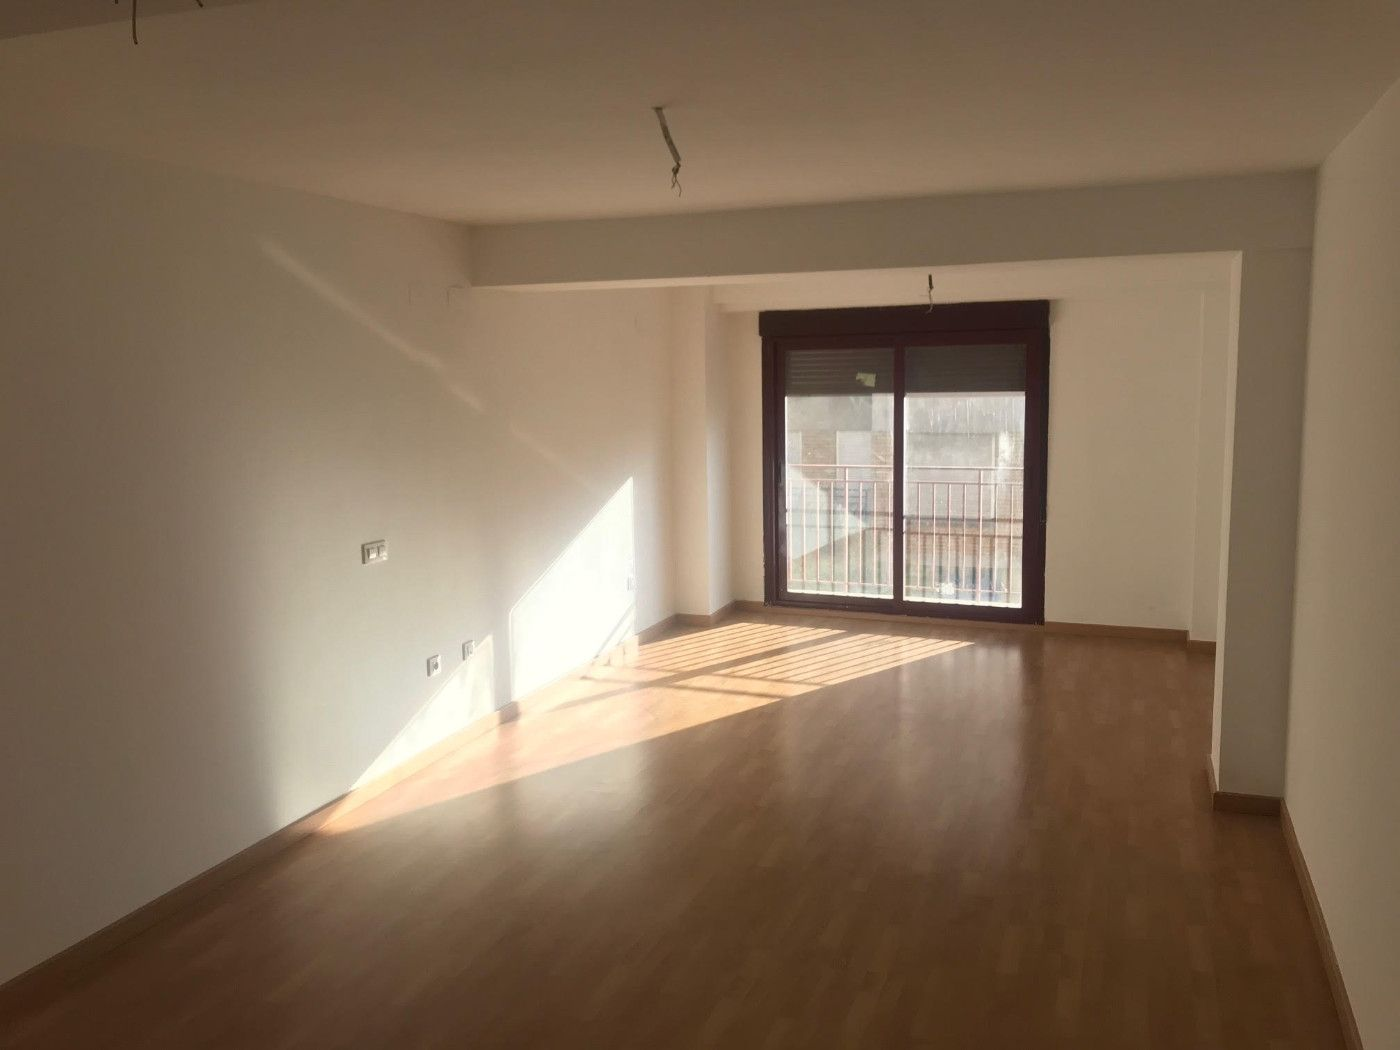 Appartement à Calle major, 32. Centro paterna